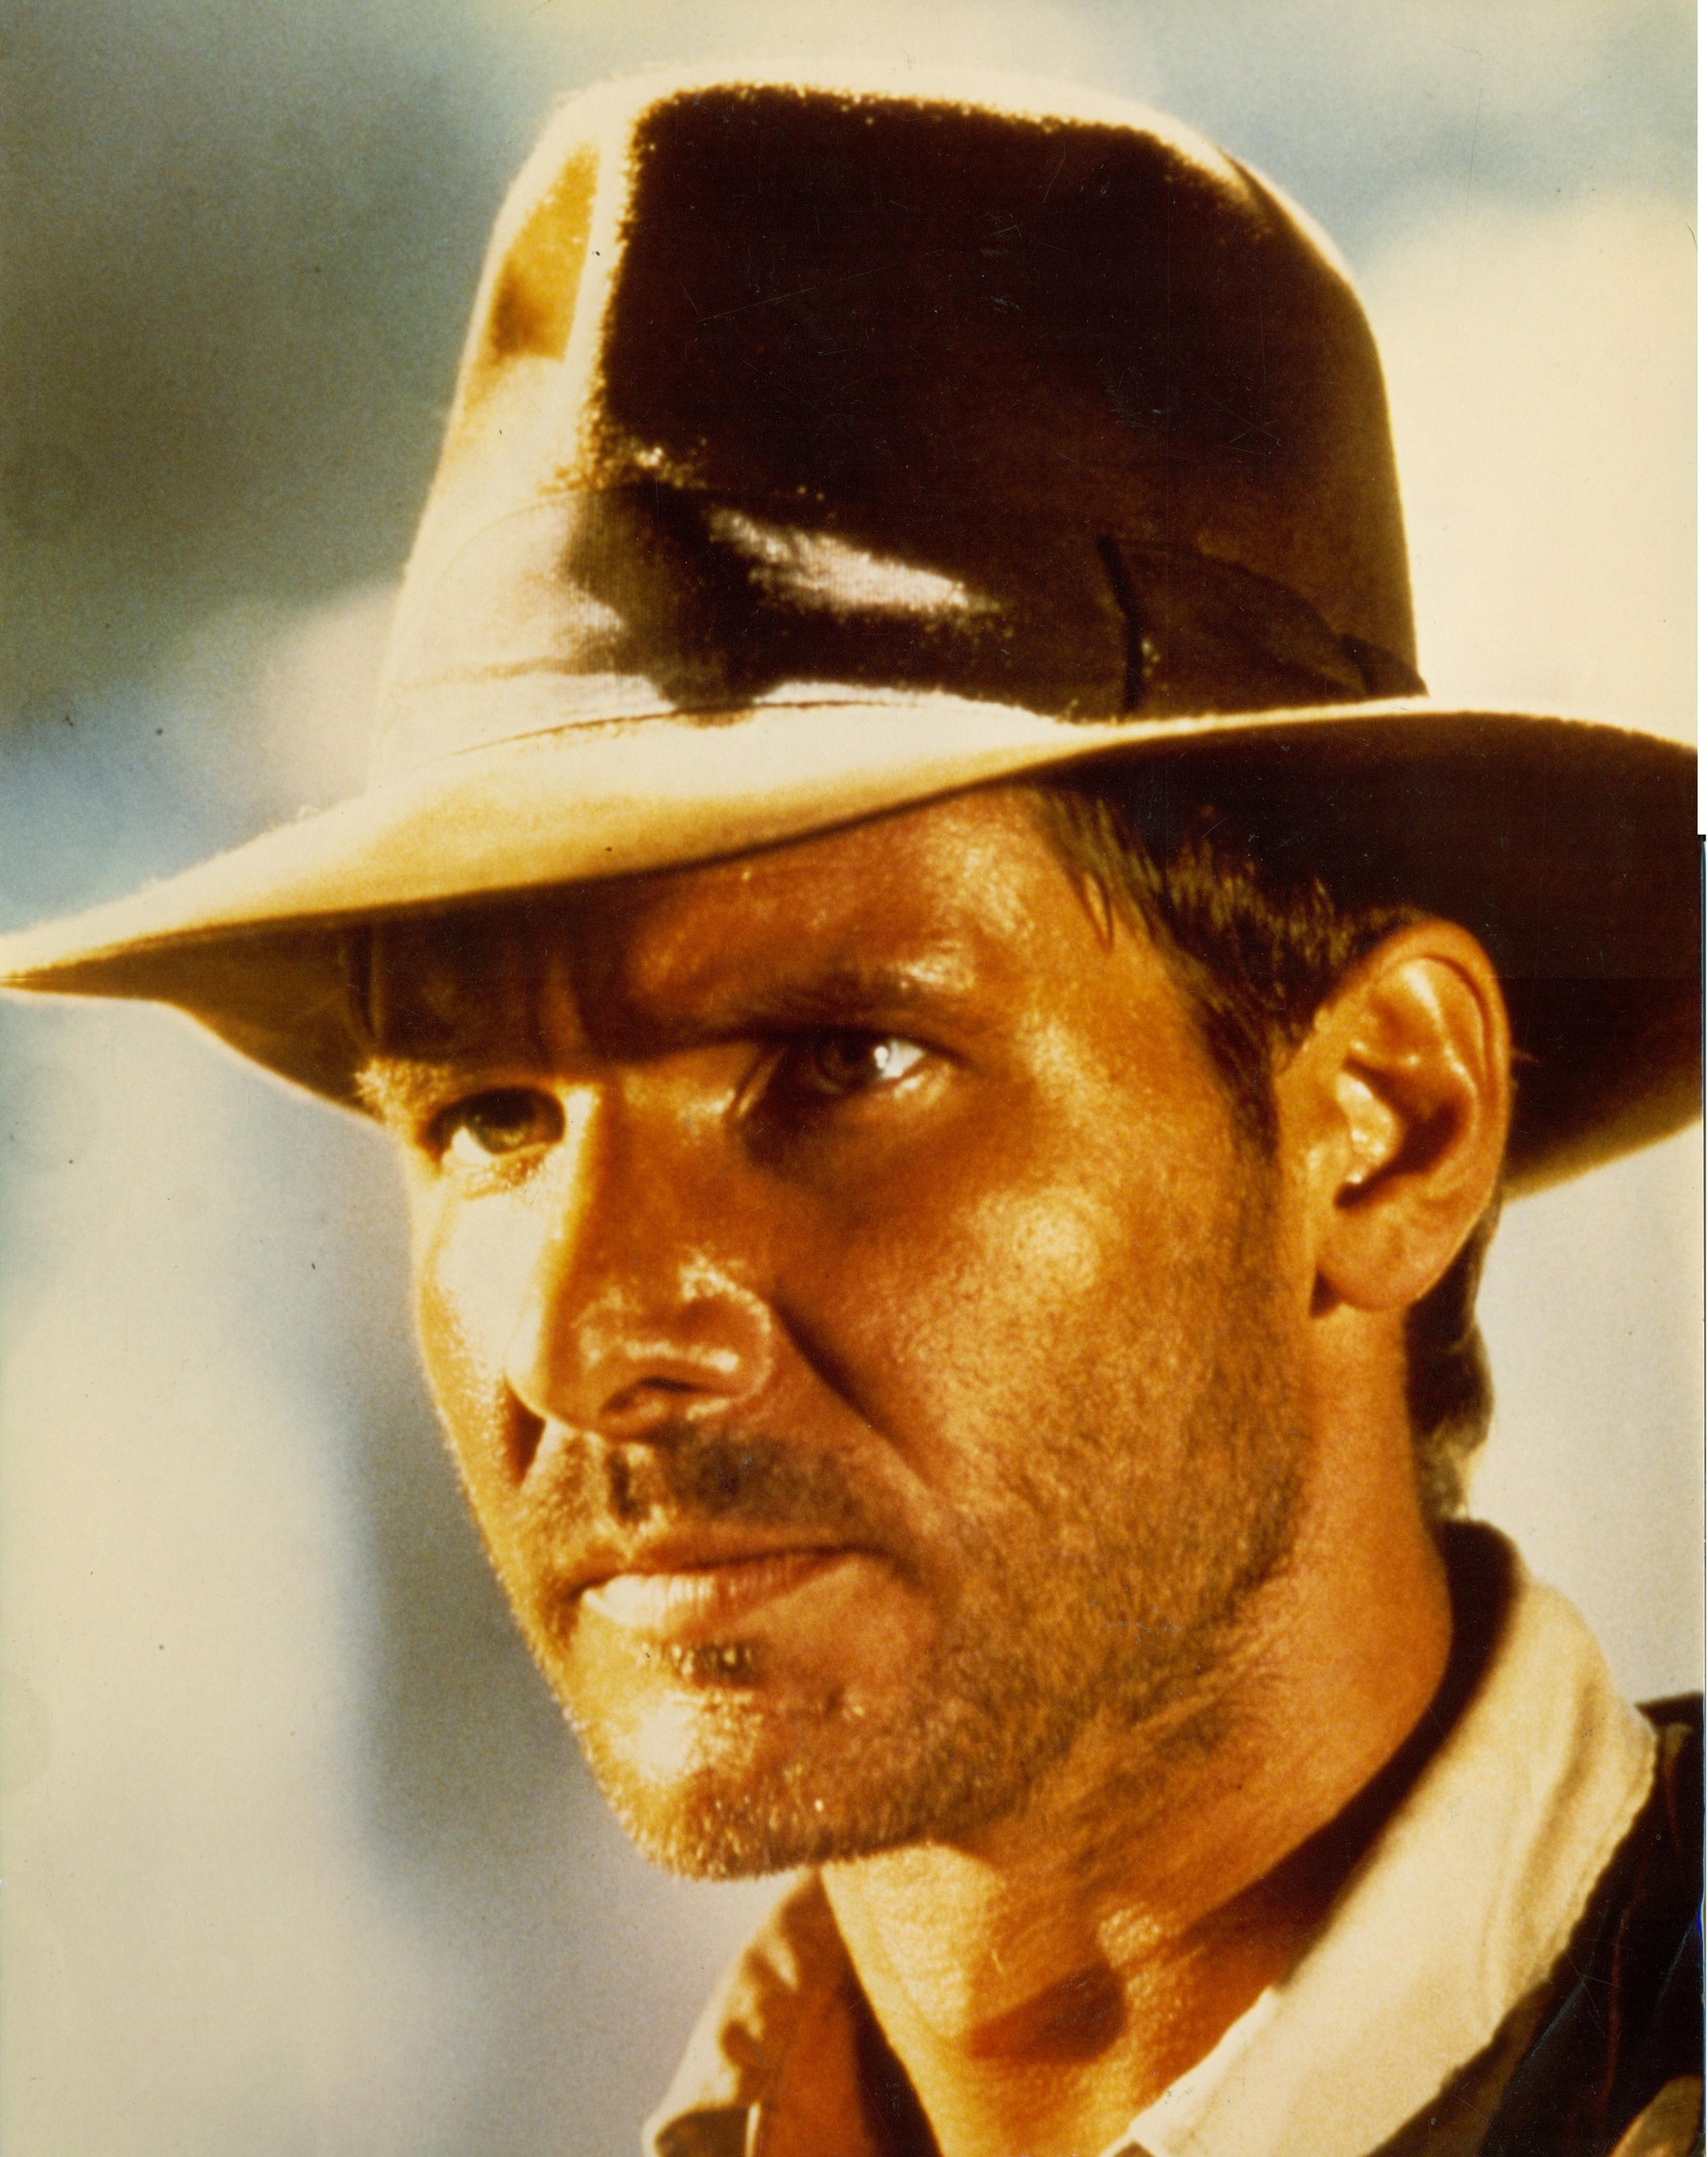 Indiana Jones images Harrison Ford as Indiana Jones HD wallpaper 2027x2560